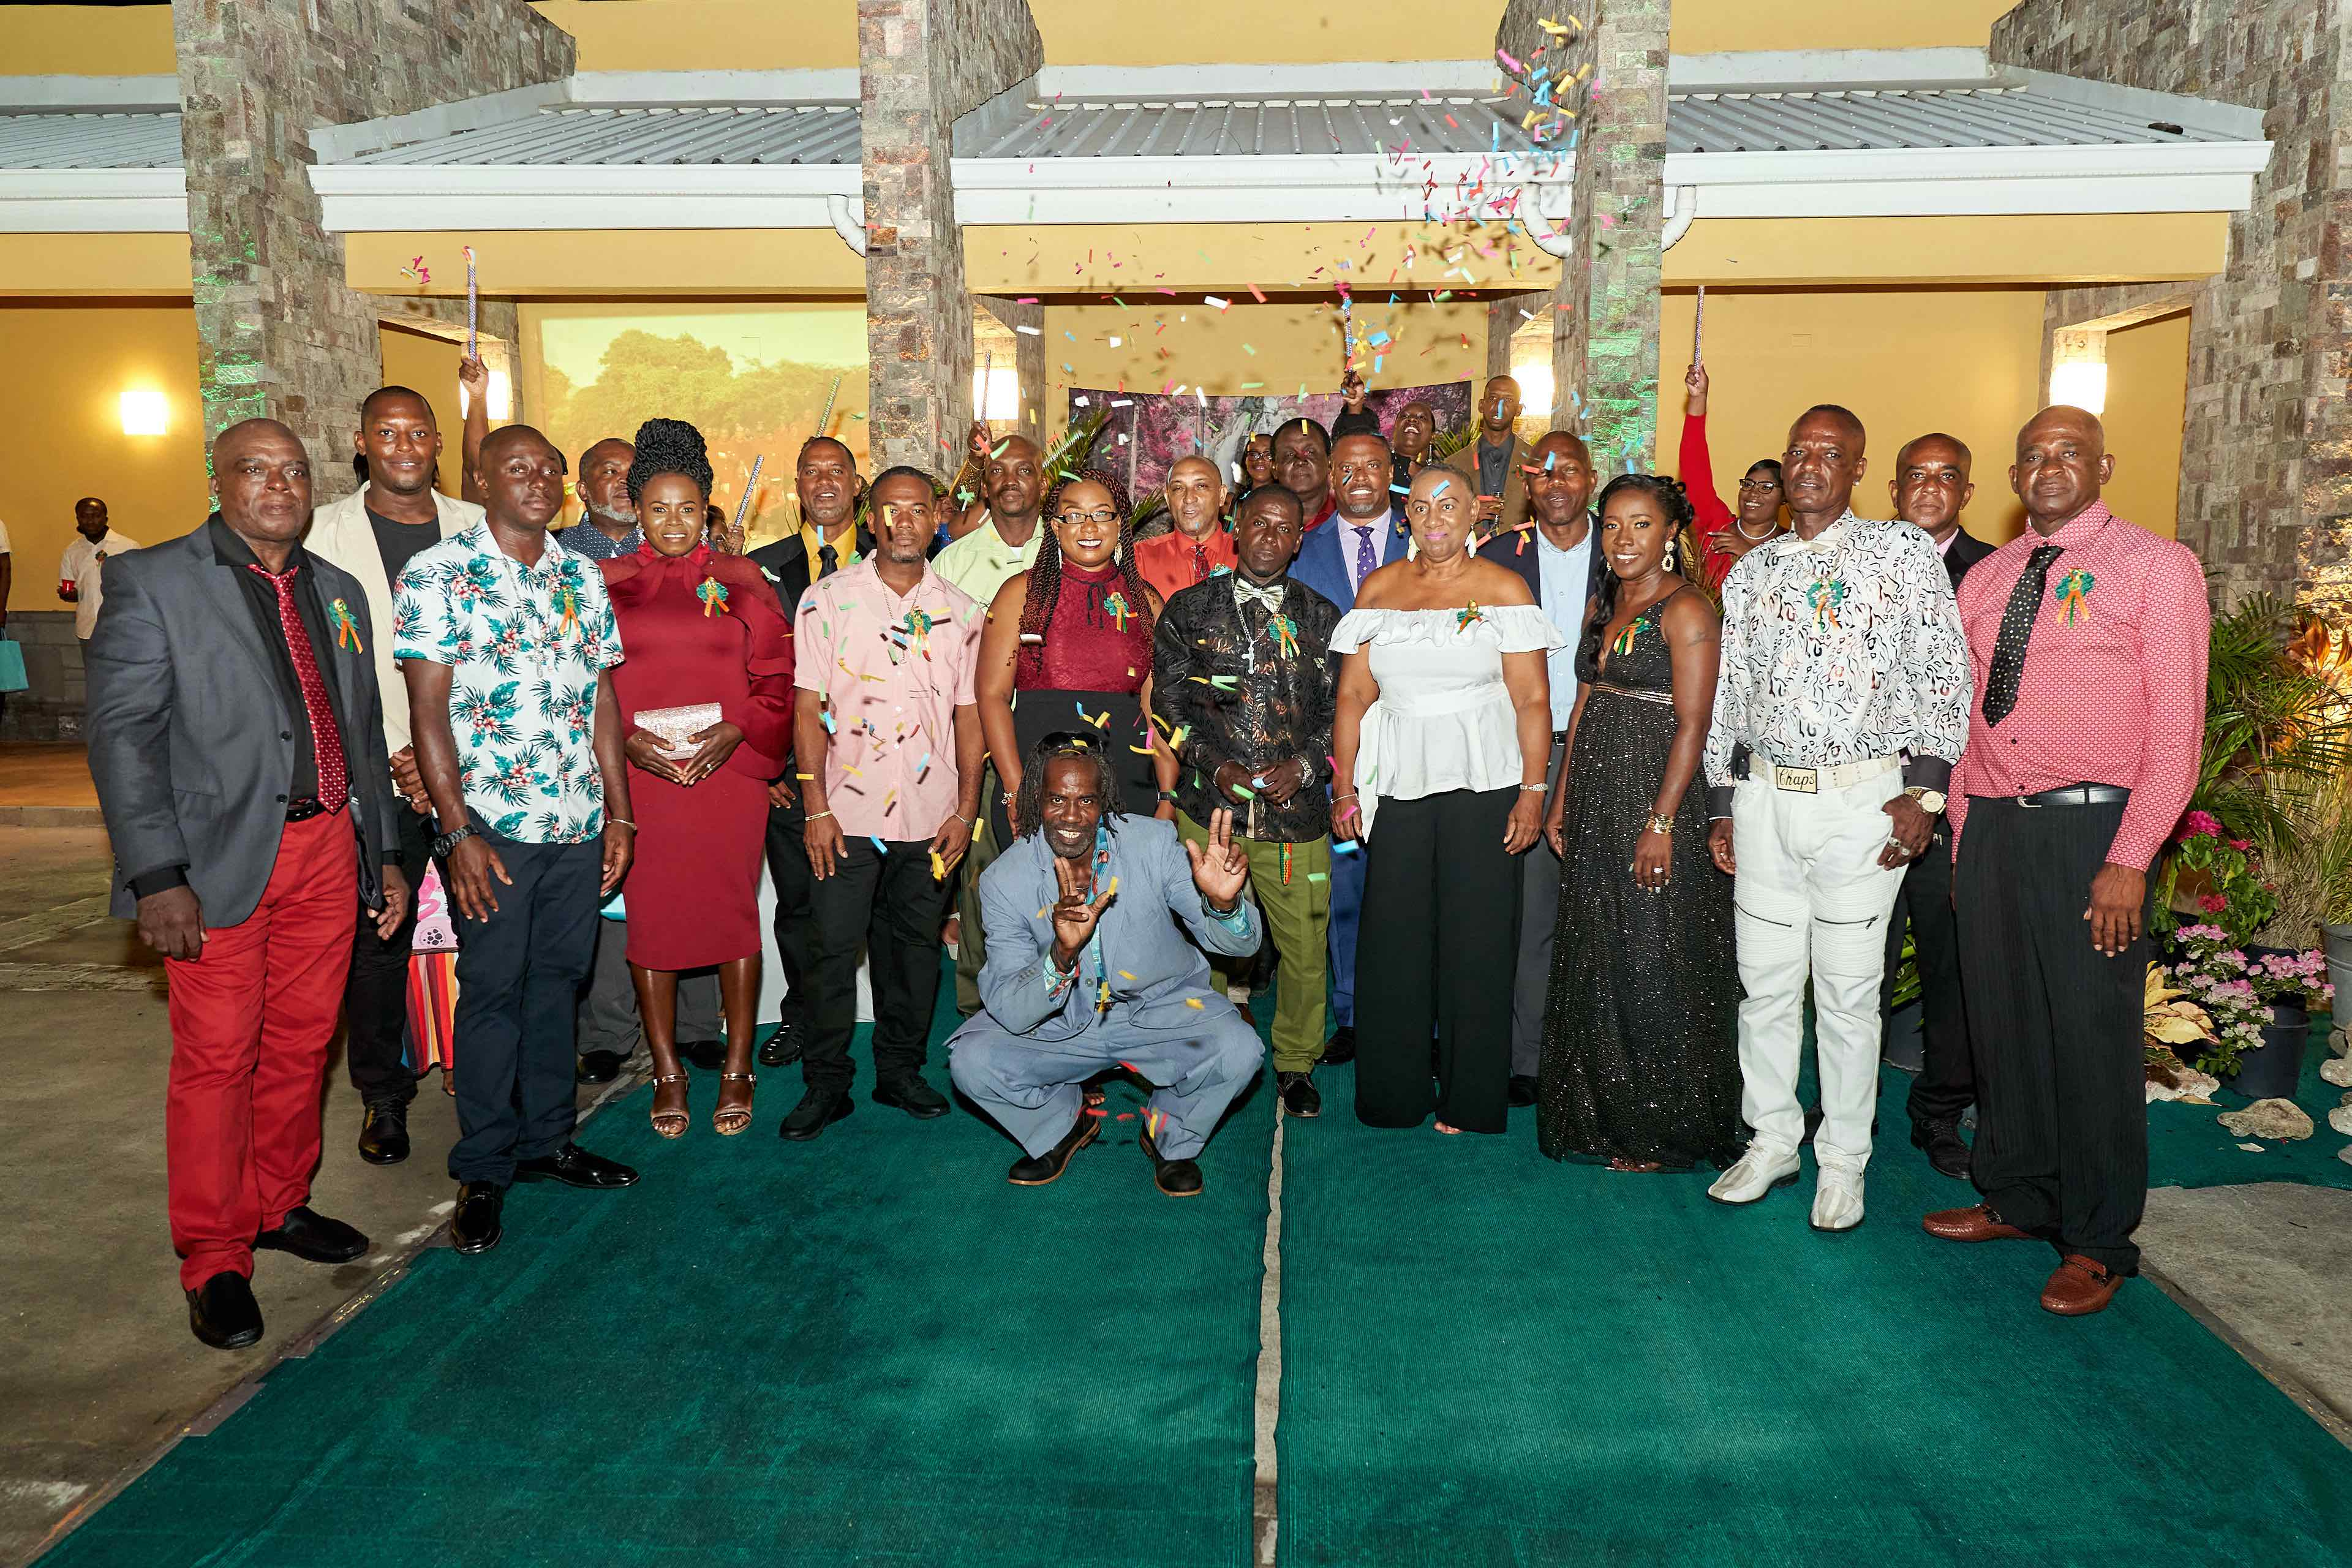 Hon. Mark Brantley, Premier of Nevis and Minister of Public Utilities (second row third from right) with the 25 past and present employees at the Nevis Electricity Company Limited honoured for 20 years of service during the company's cocktail and awards ceremony at the Nevis Performing Arts Centre on August 29, 2020, in celebration of the company's 20th anniversary on September 01, 2020 (Photo courtesy the Nevis Electricity Company Limited)